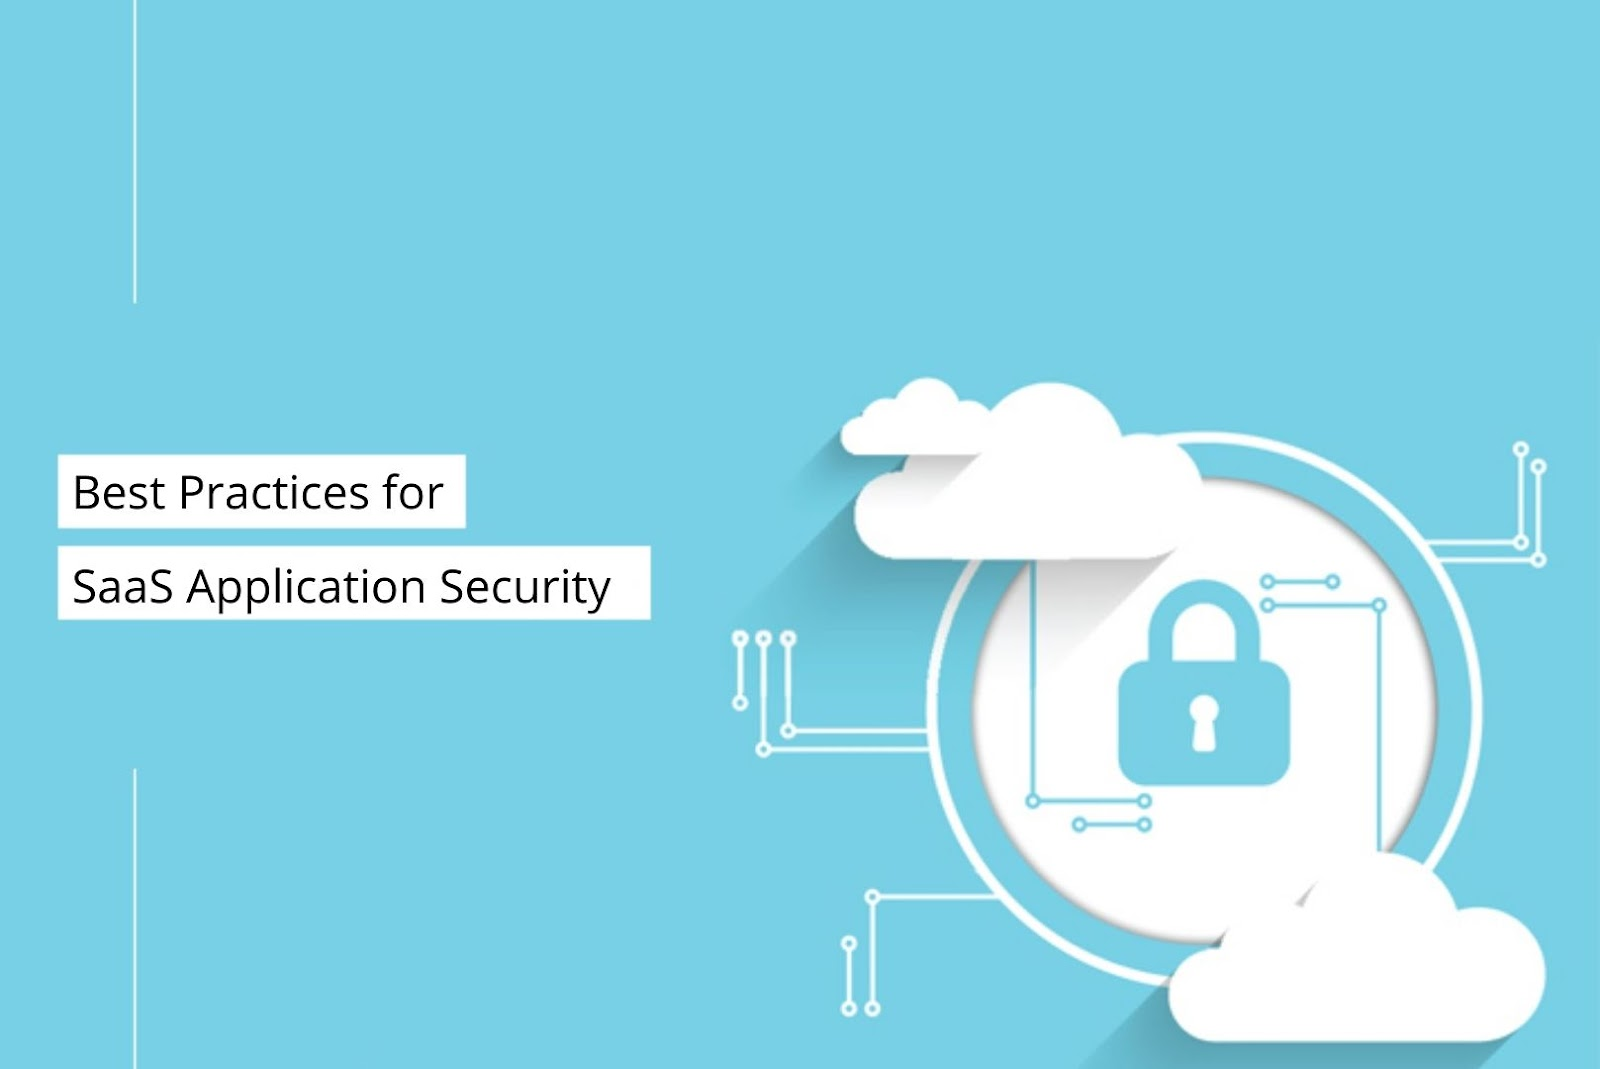 Best practice for saas application security